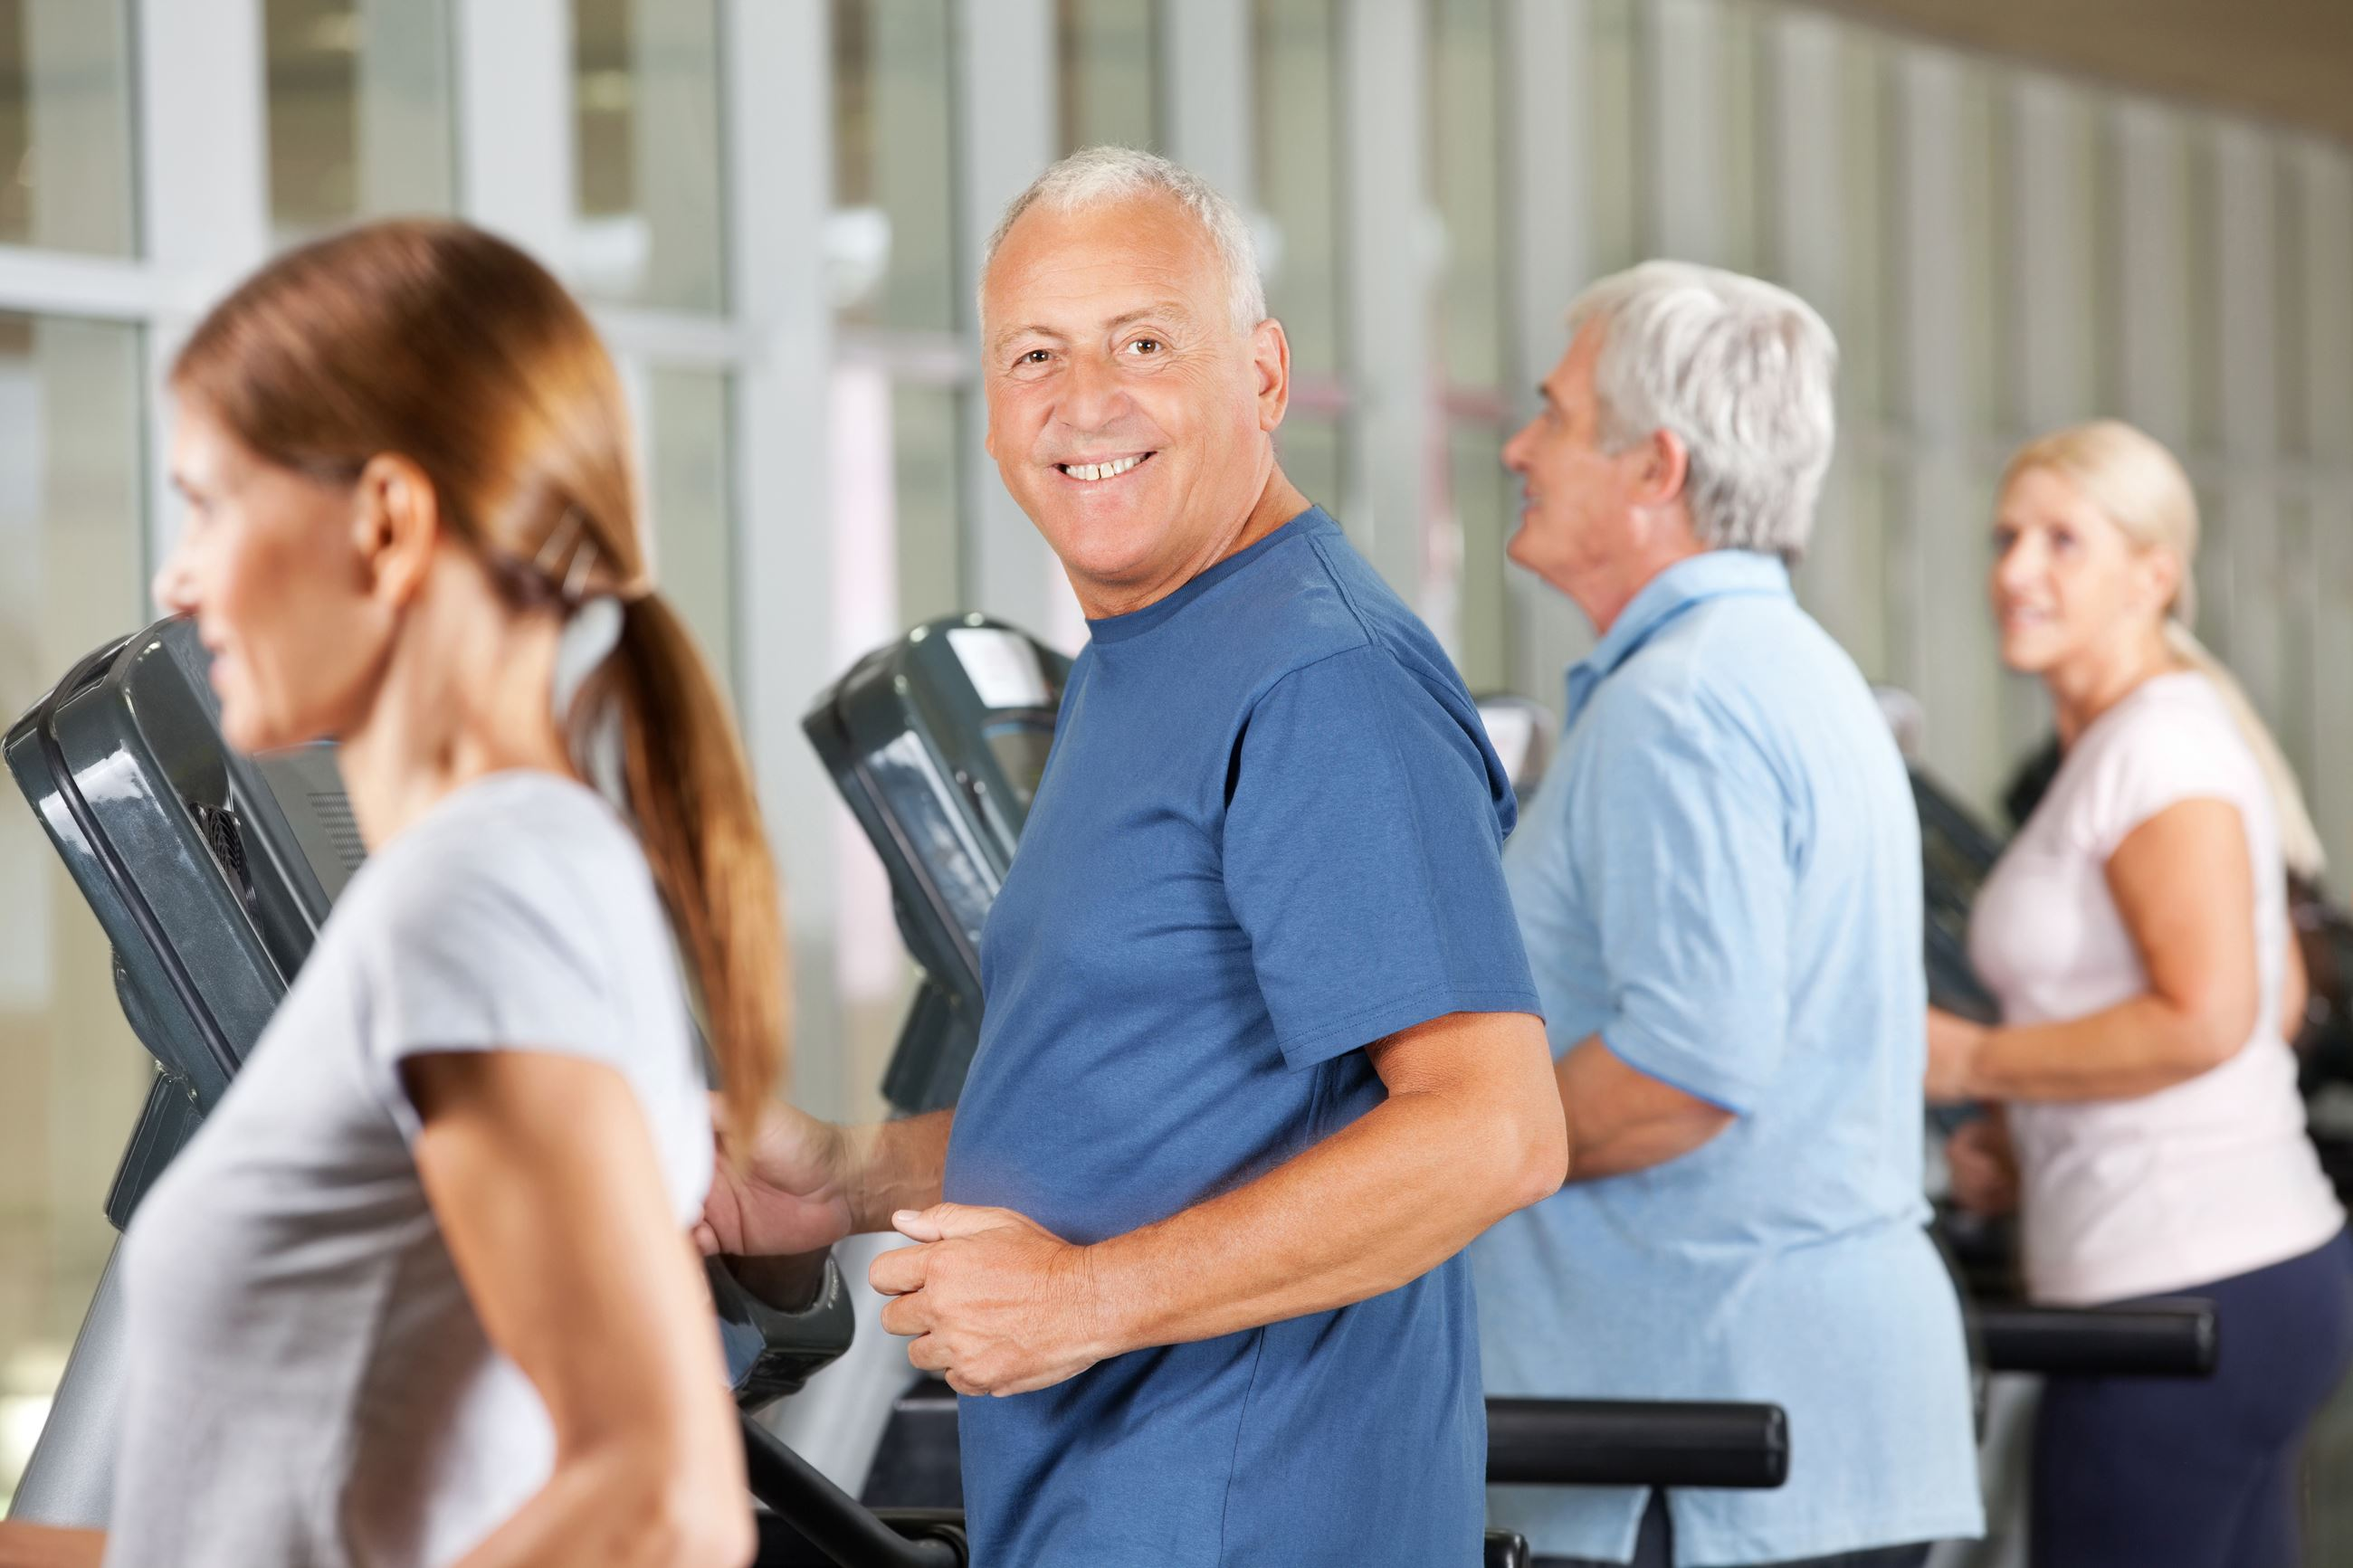 happy folks on treadmills